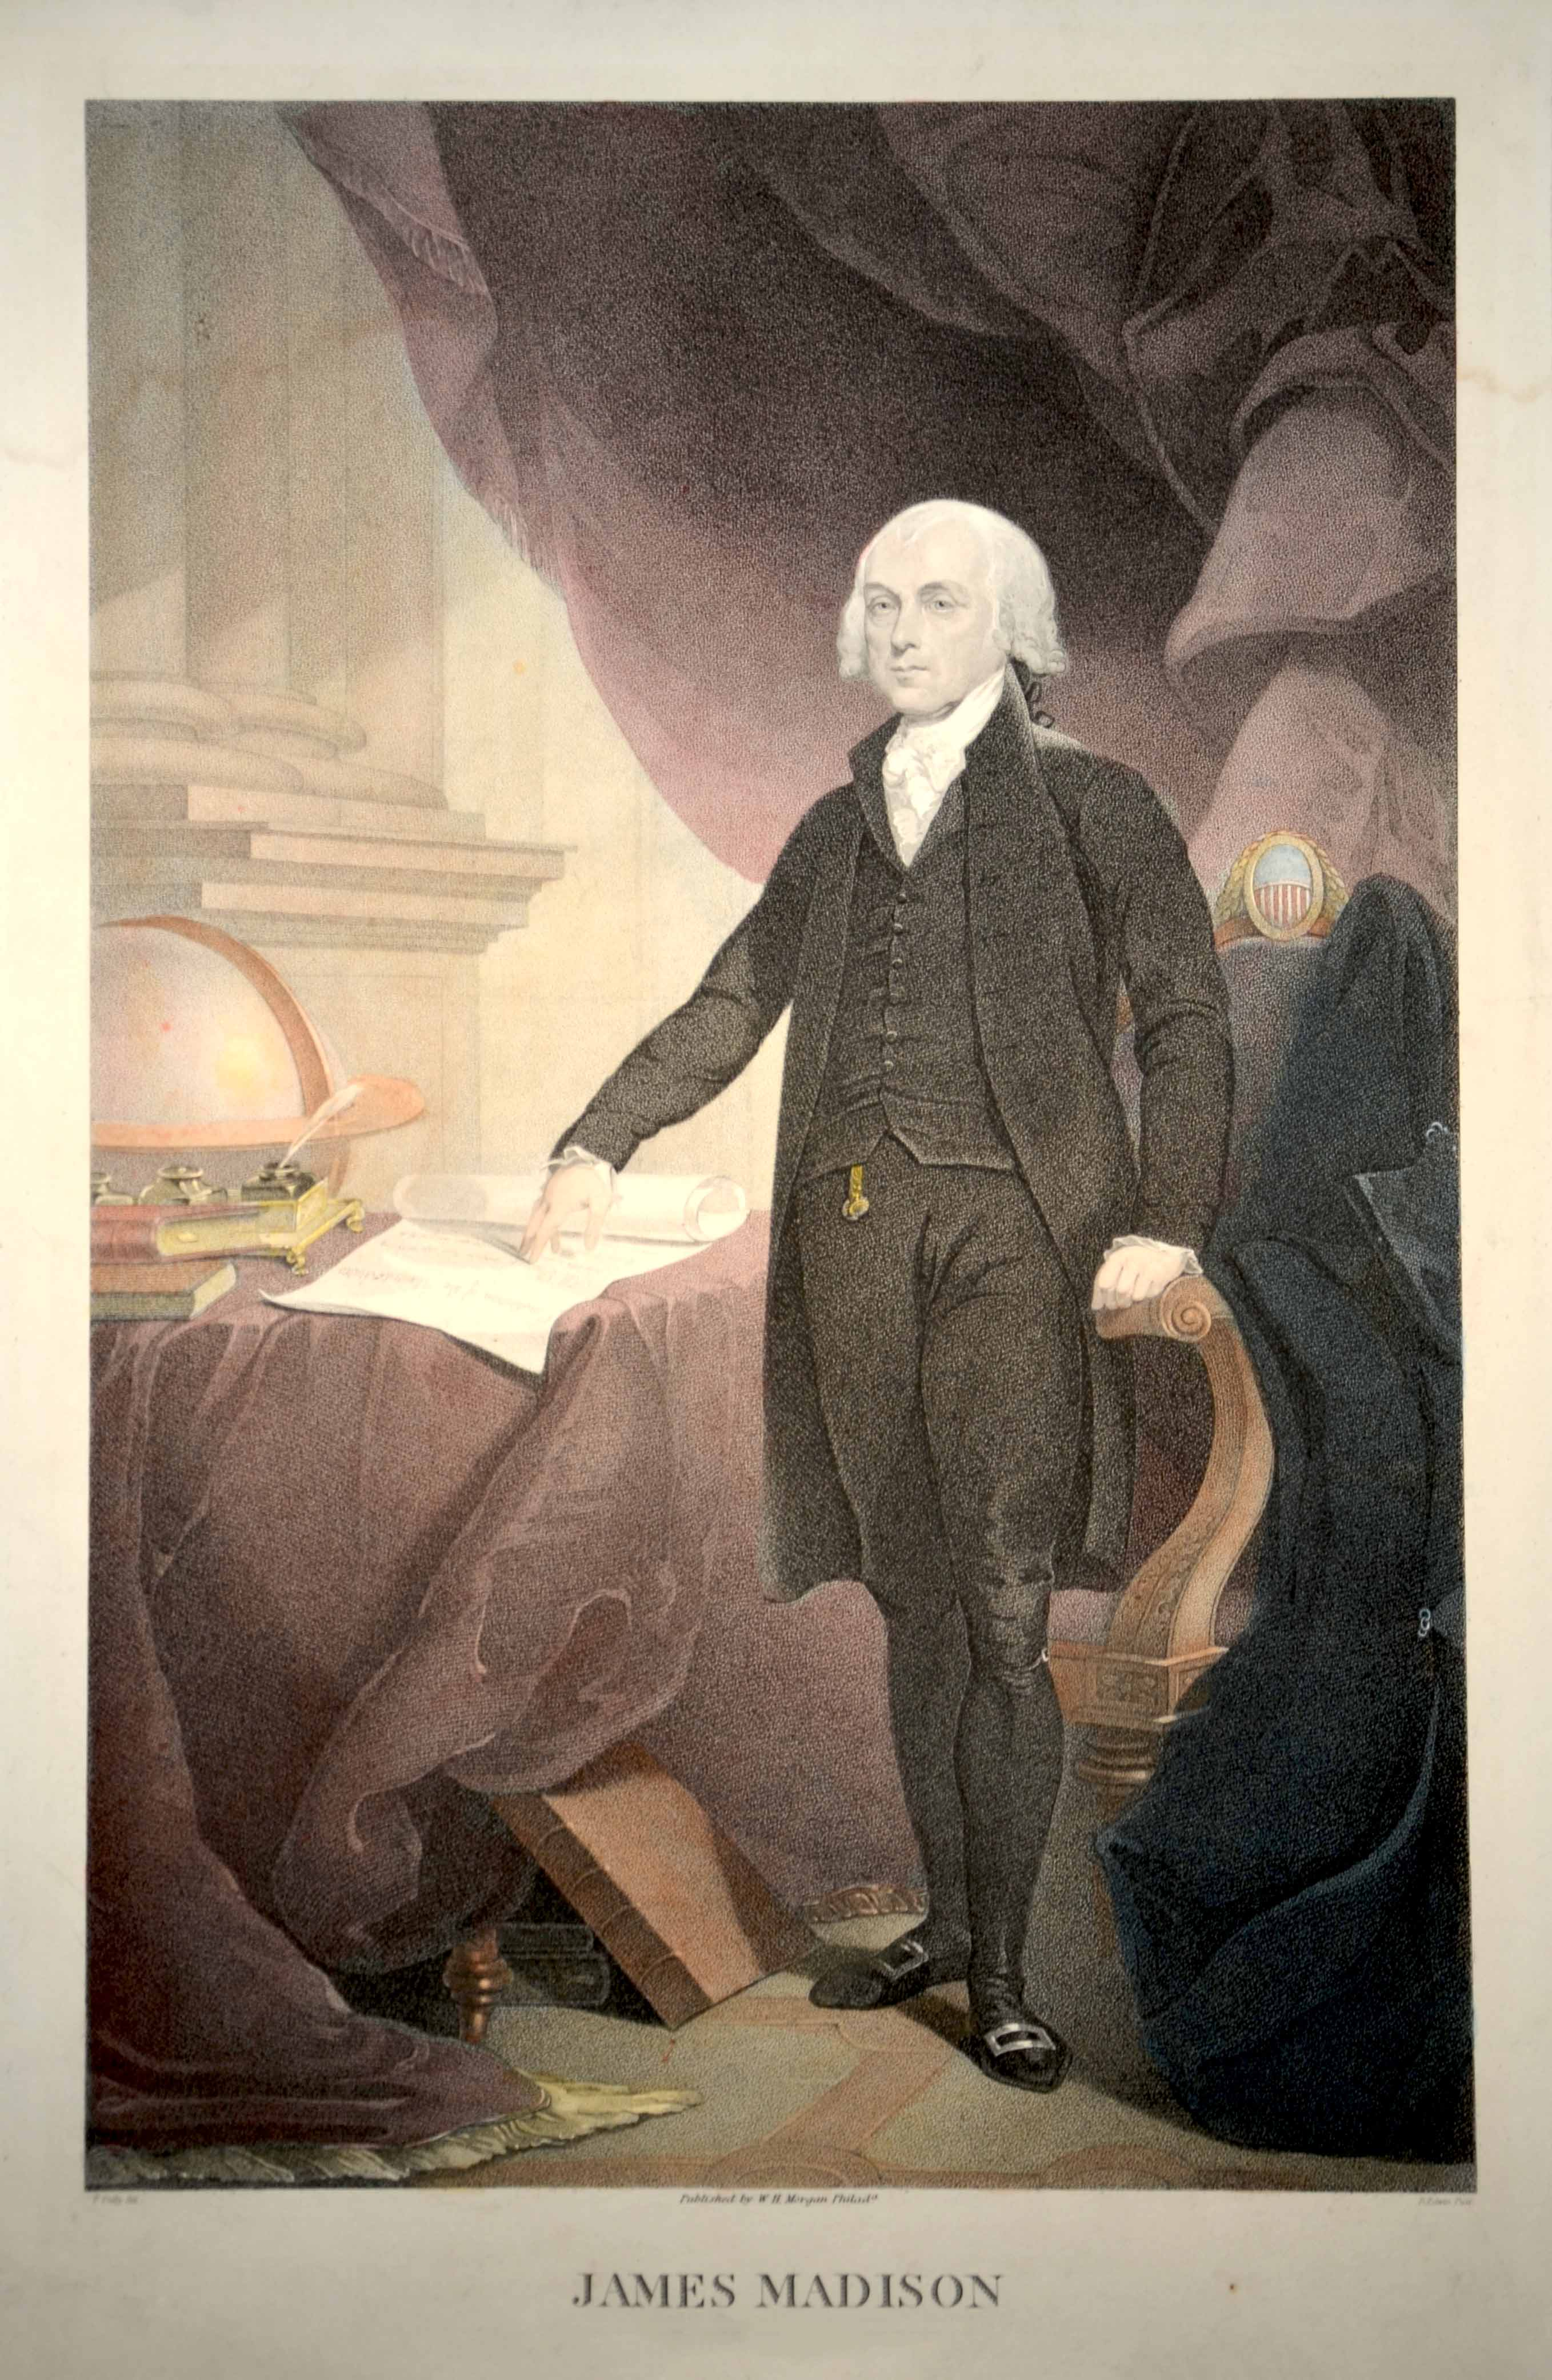 an introduction to the life of james madison Madison, james, jr, a delegate and a representative from virginia and 4th  president of the united states born in port conway, king george county, va,.